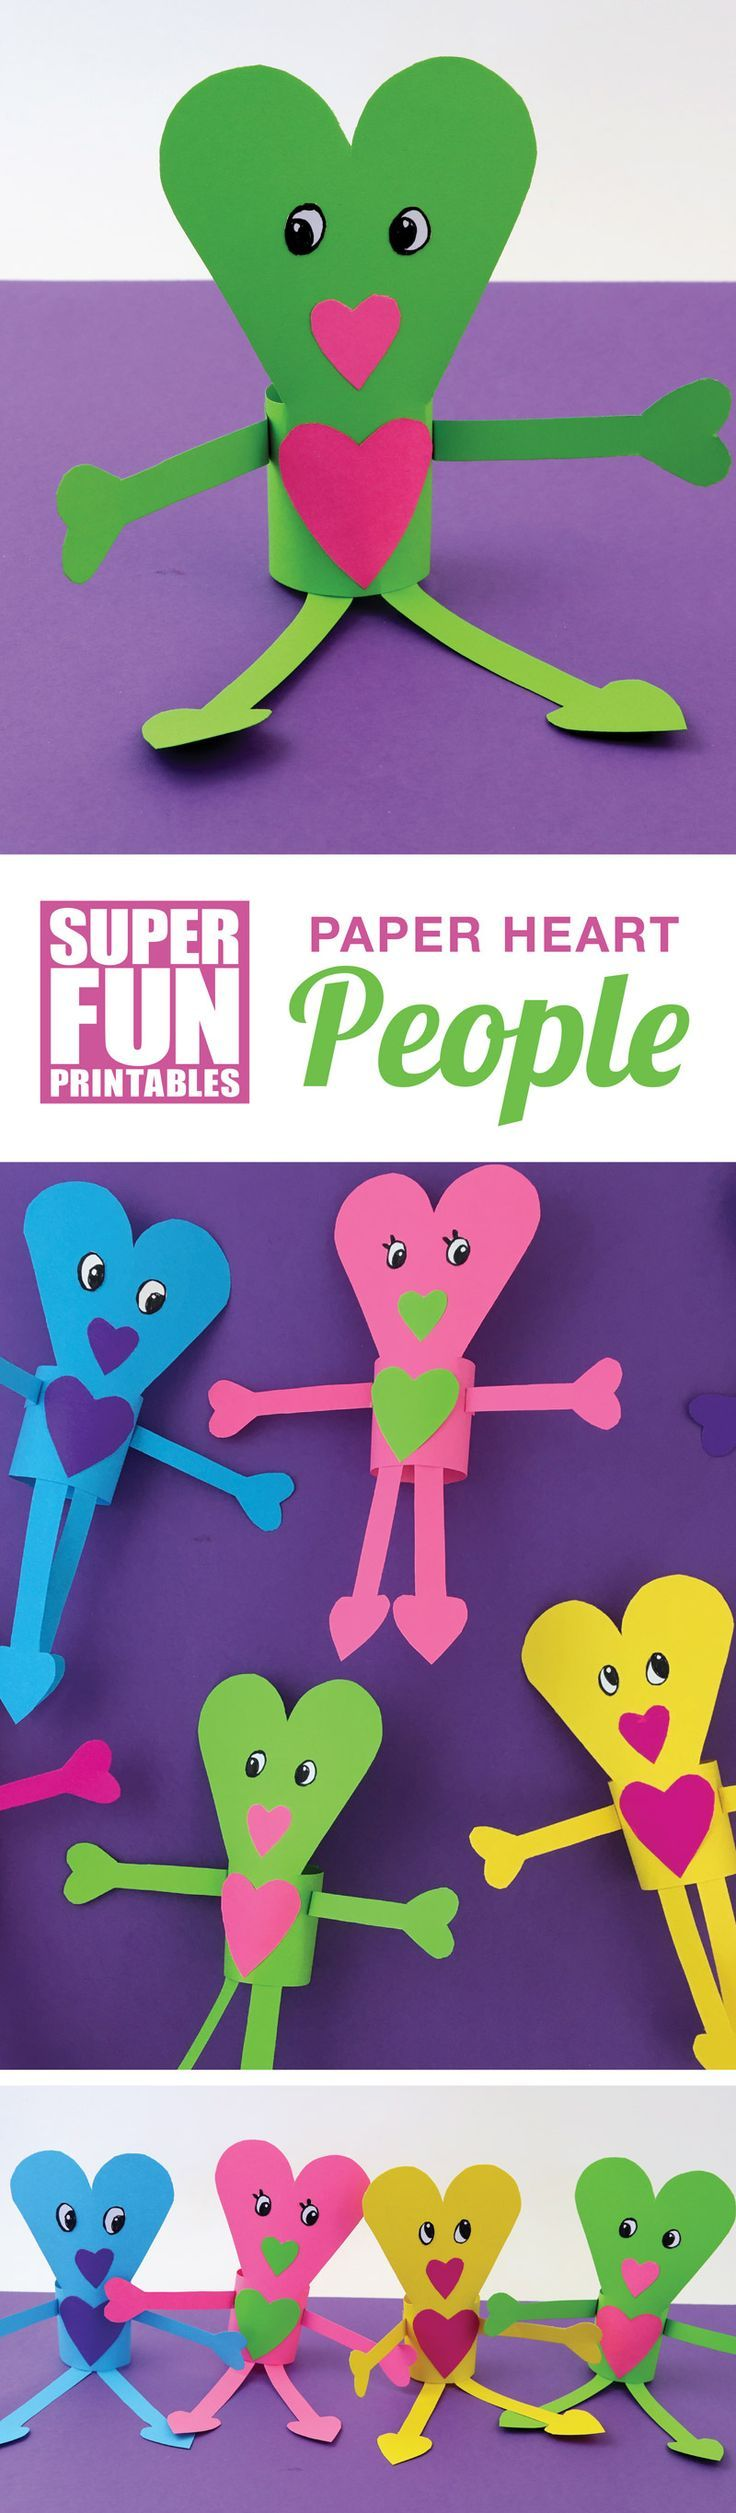 Paper heart people printable Valentines Day craft idea for kids